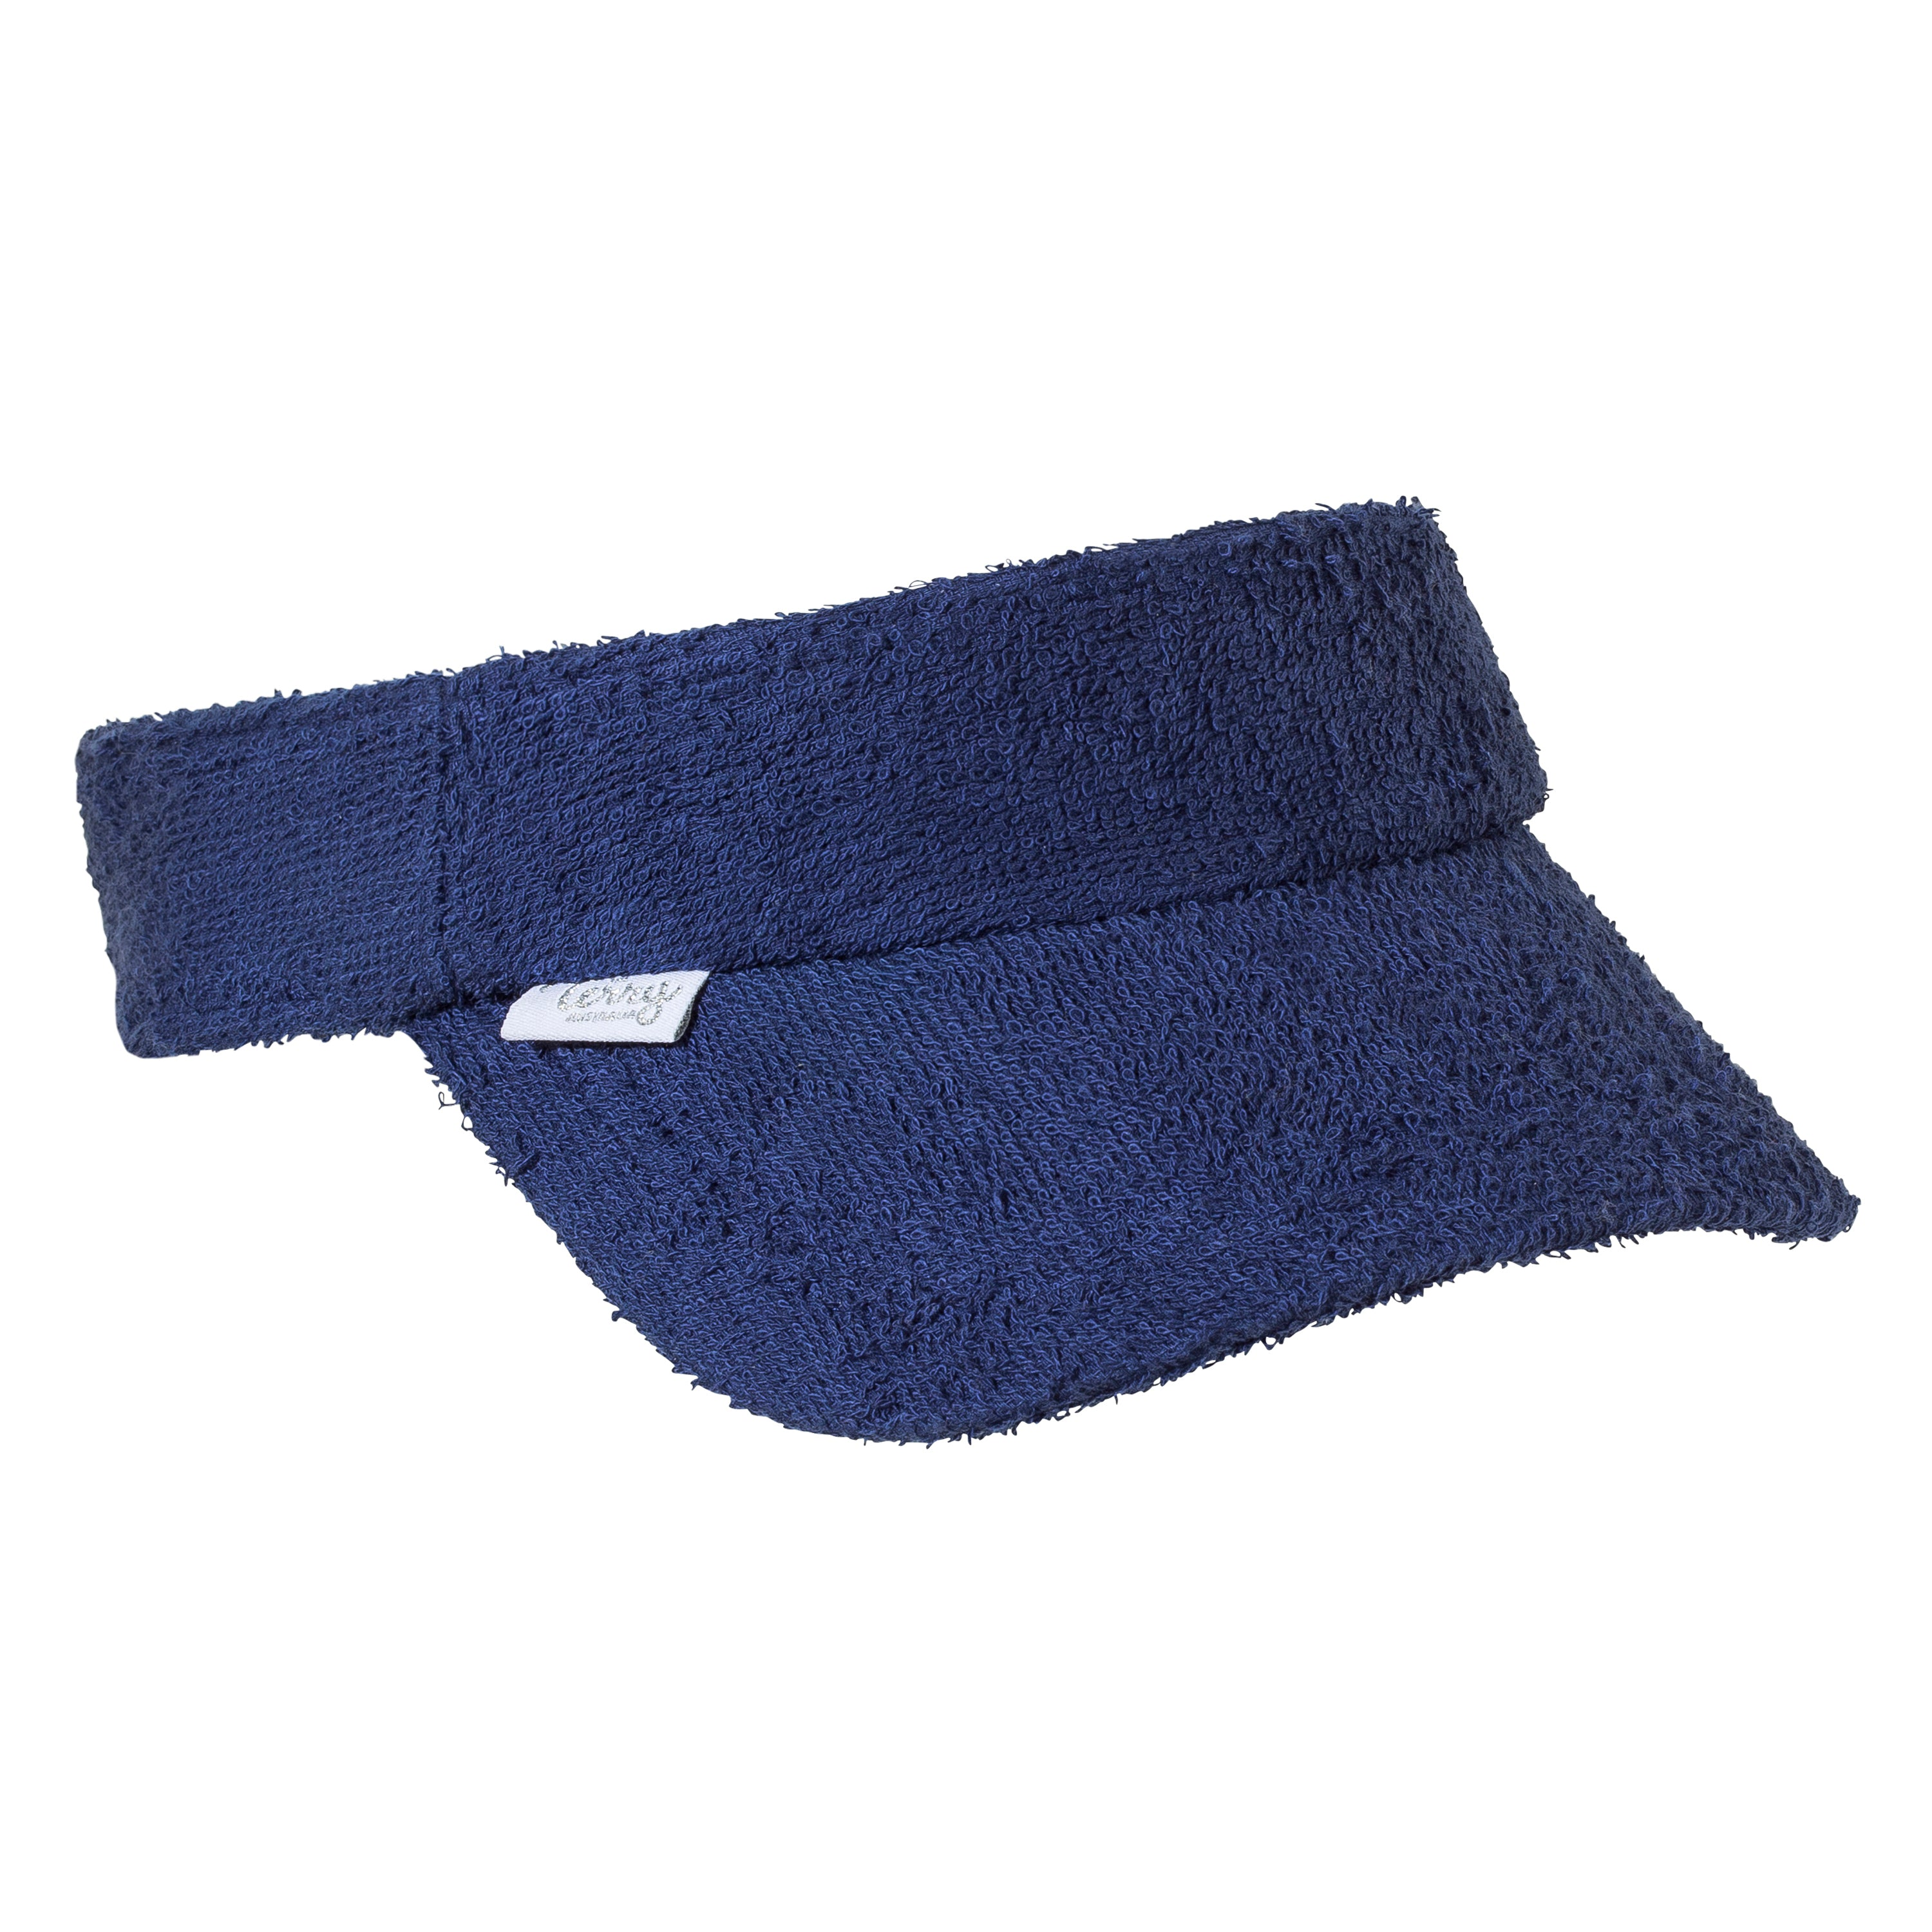 Navy Blue Terry Towelling Visor - The Terry Australia